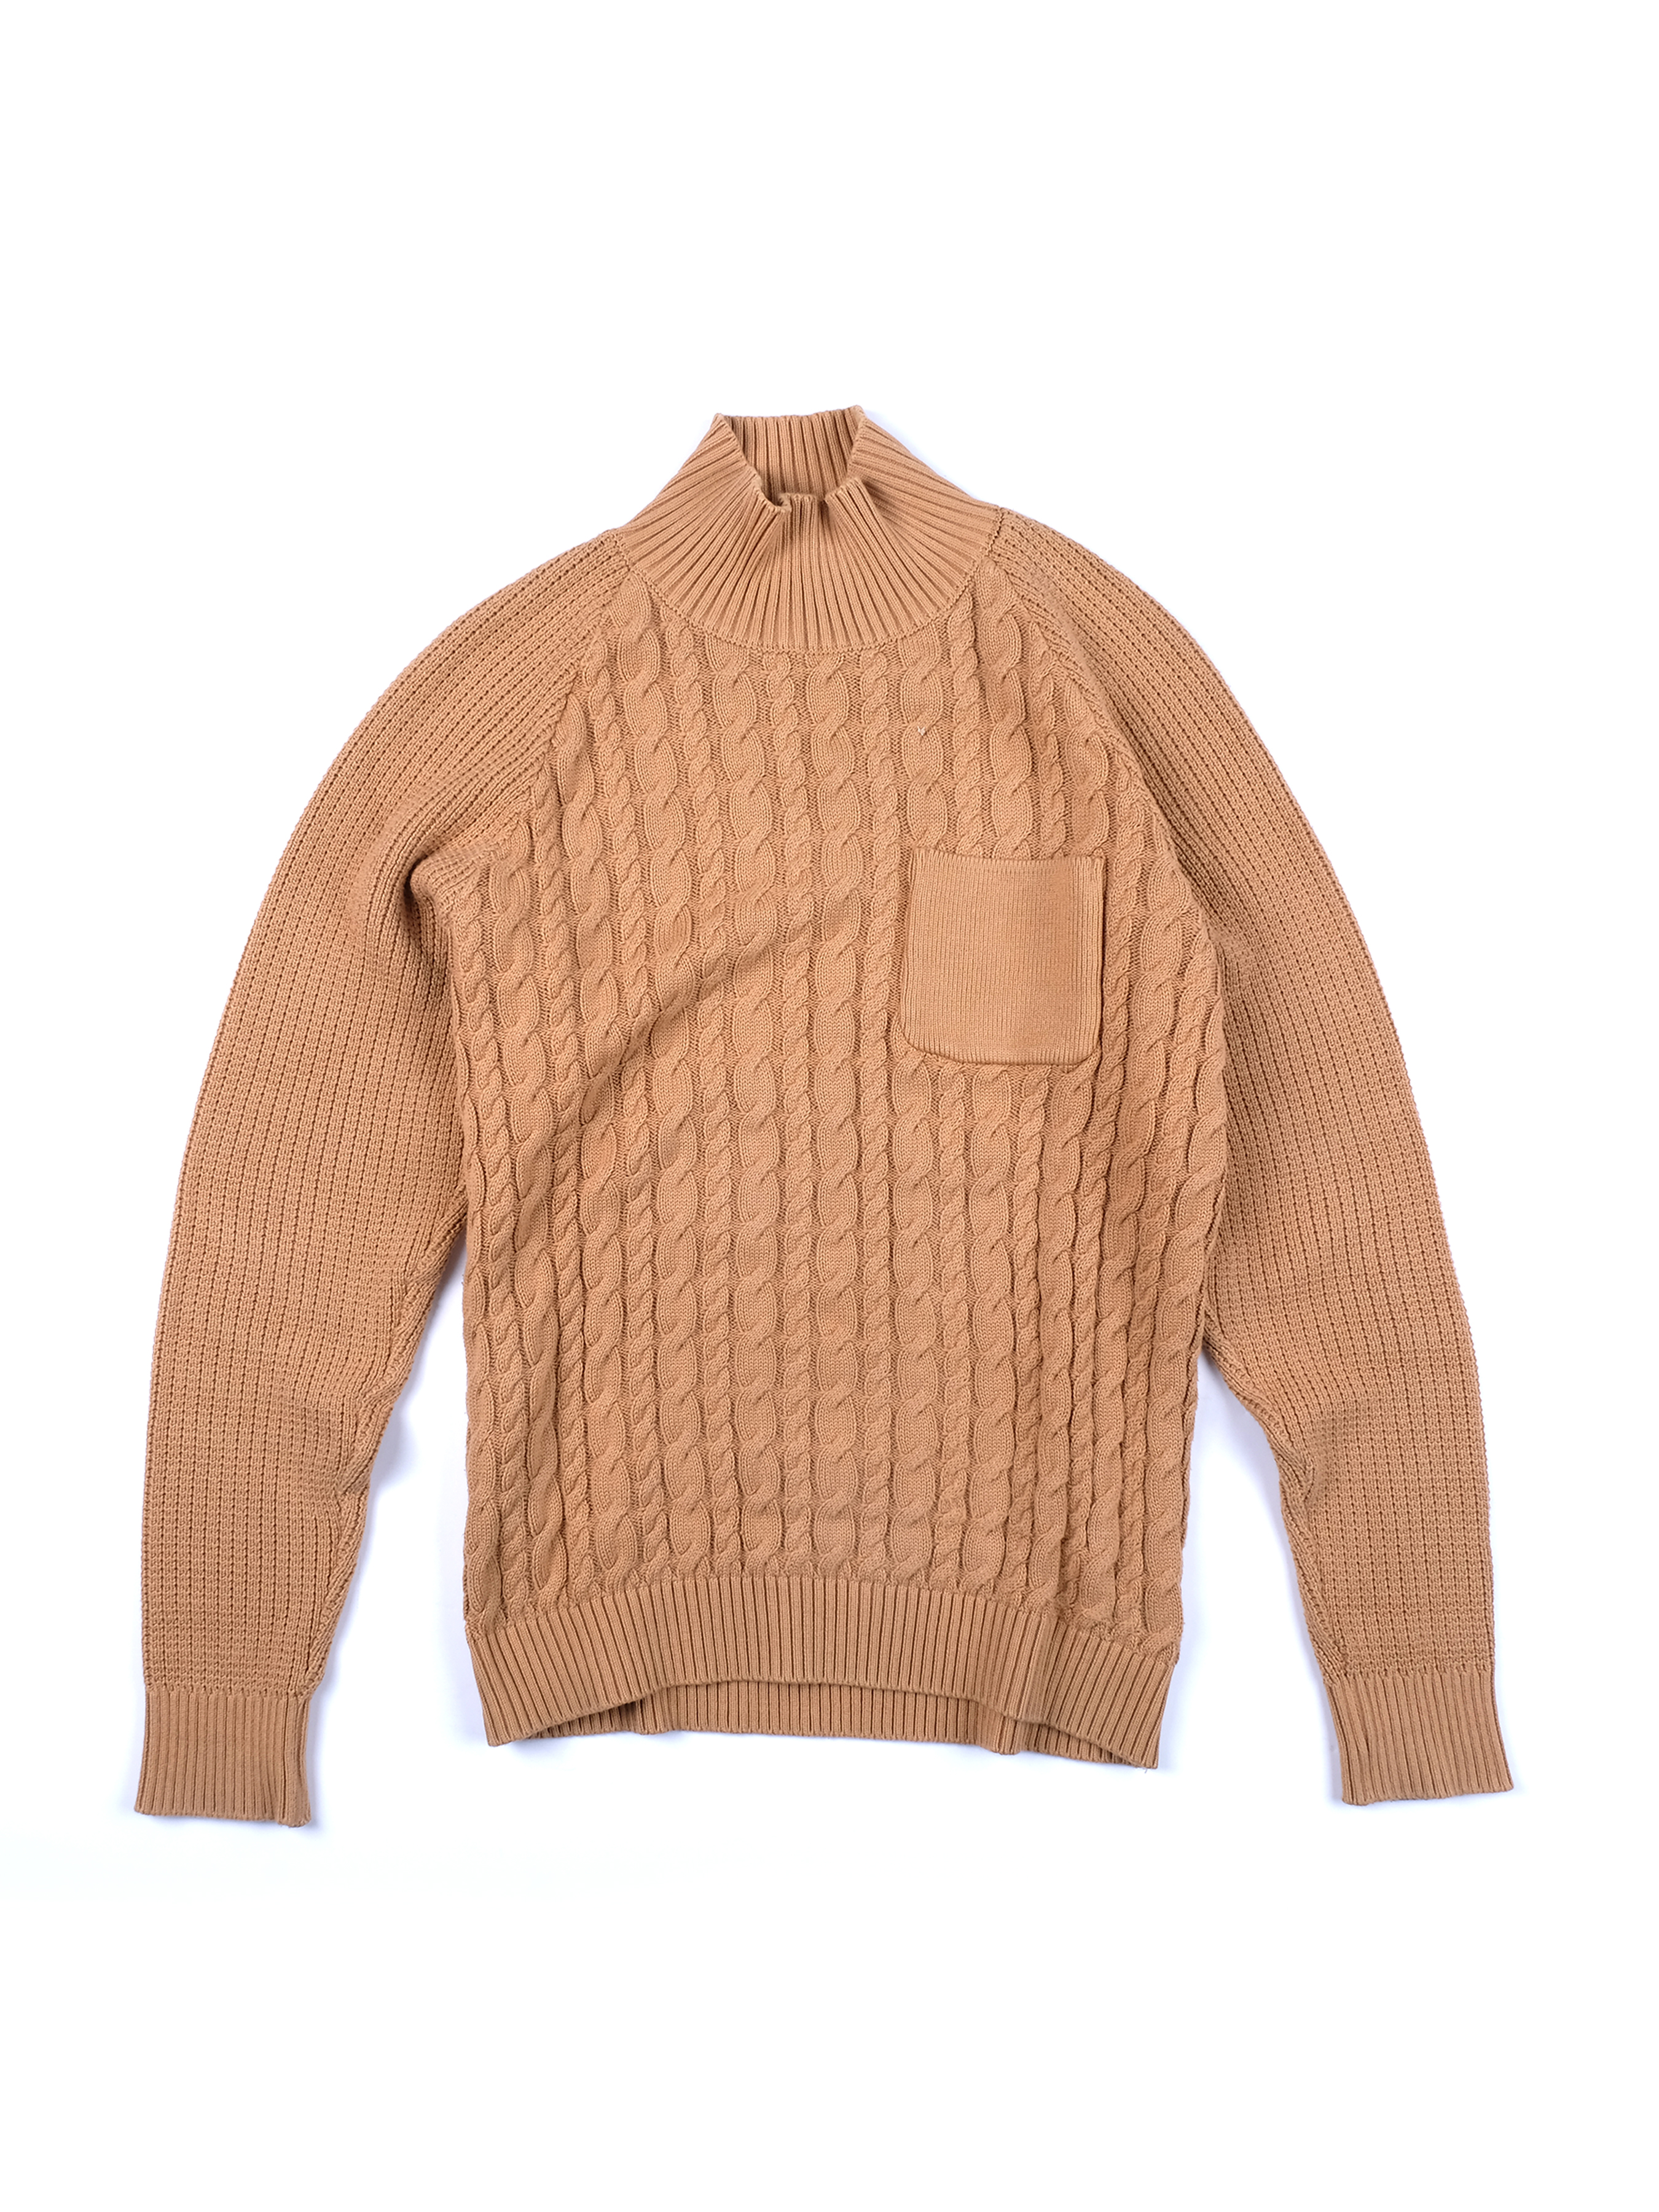 4746edabc4 Undercover Chunky Knit Tan Sweater Size l - Sweaters   Knitwear for Sale -  Grailed